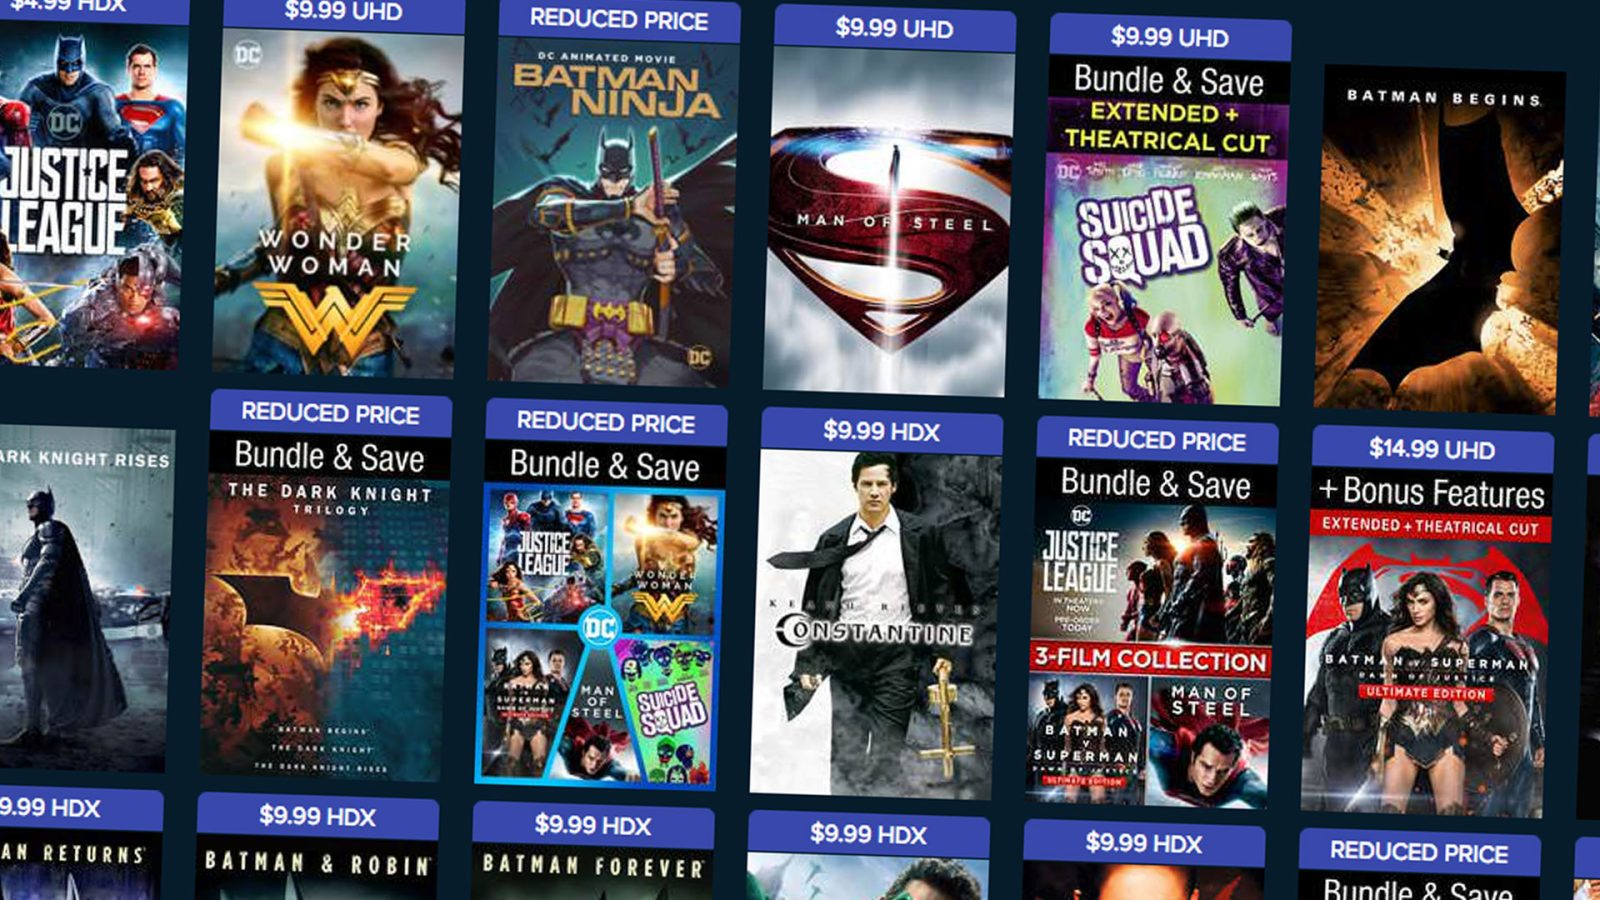 Buy select DC movies from $5 on VUDU, get $8 off your Aquaman movie